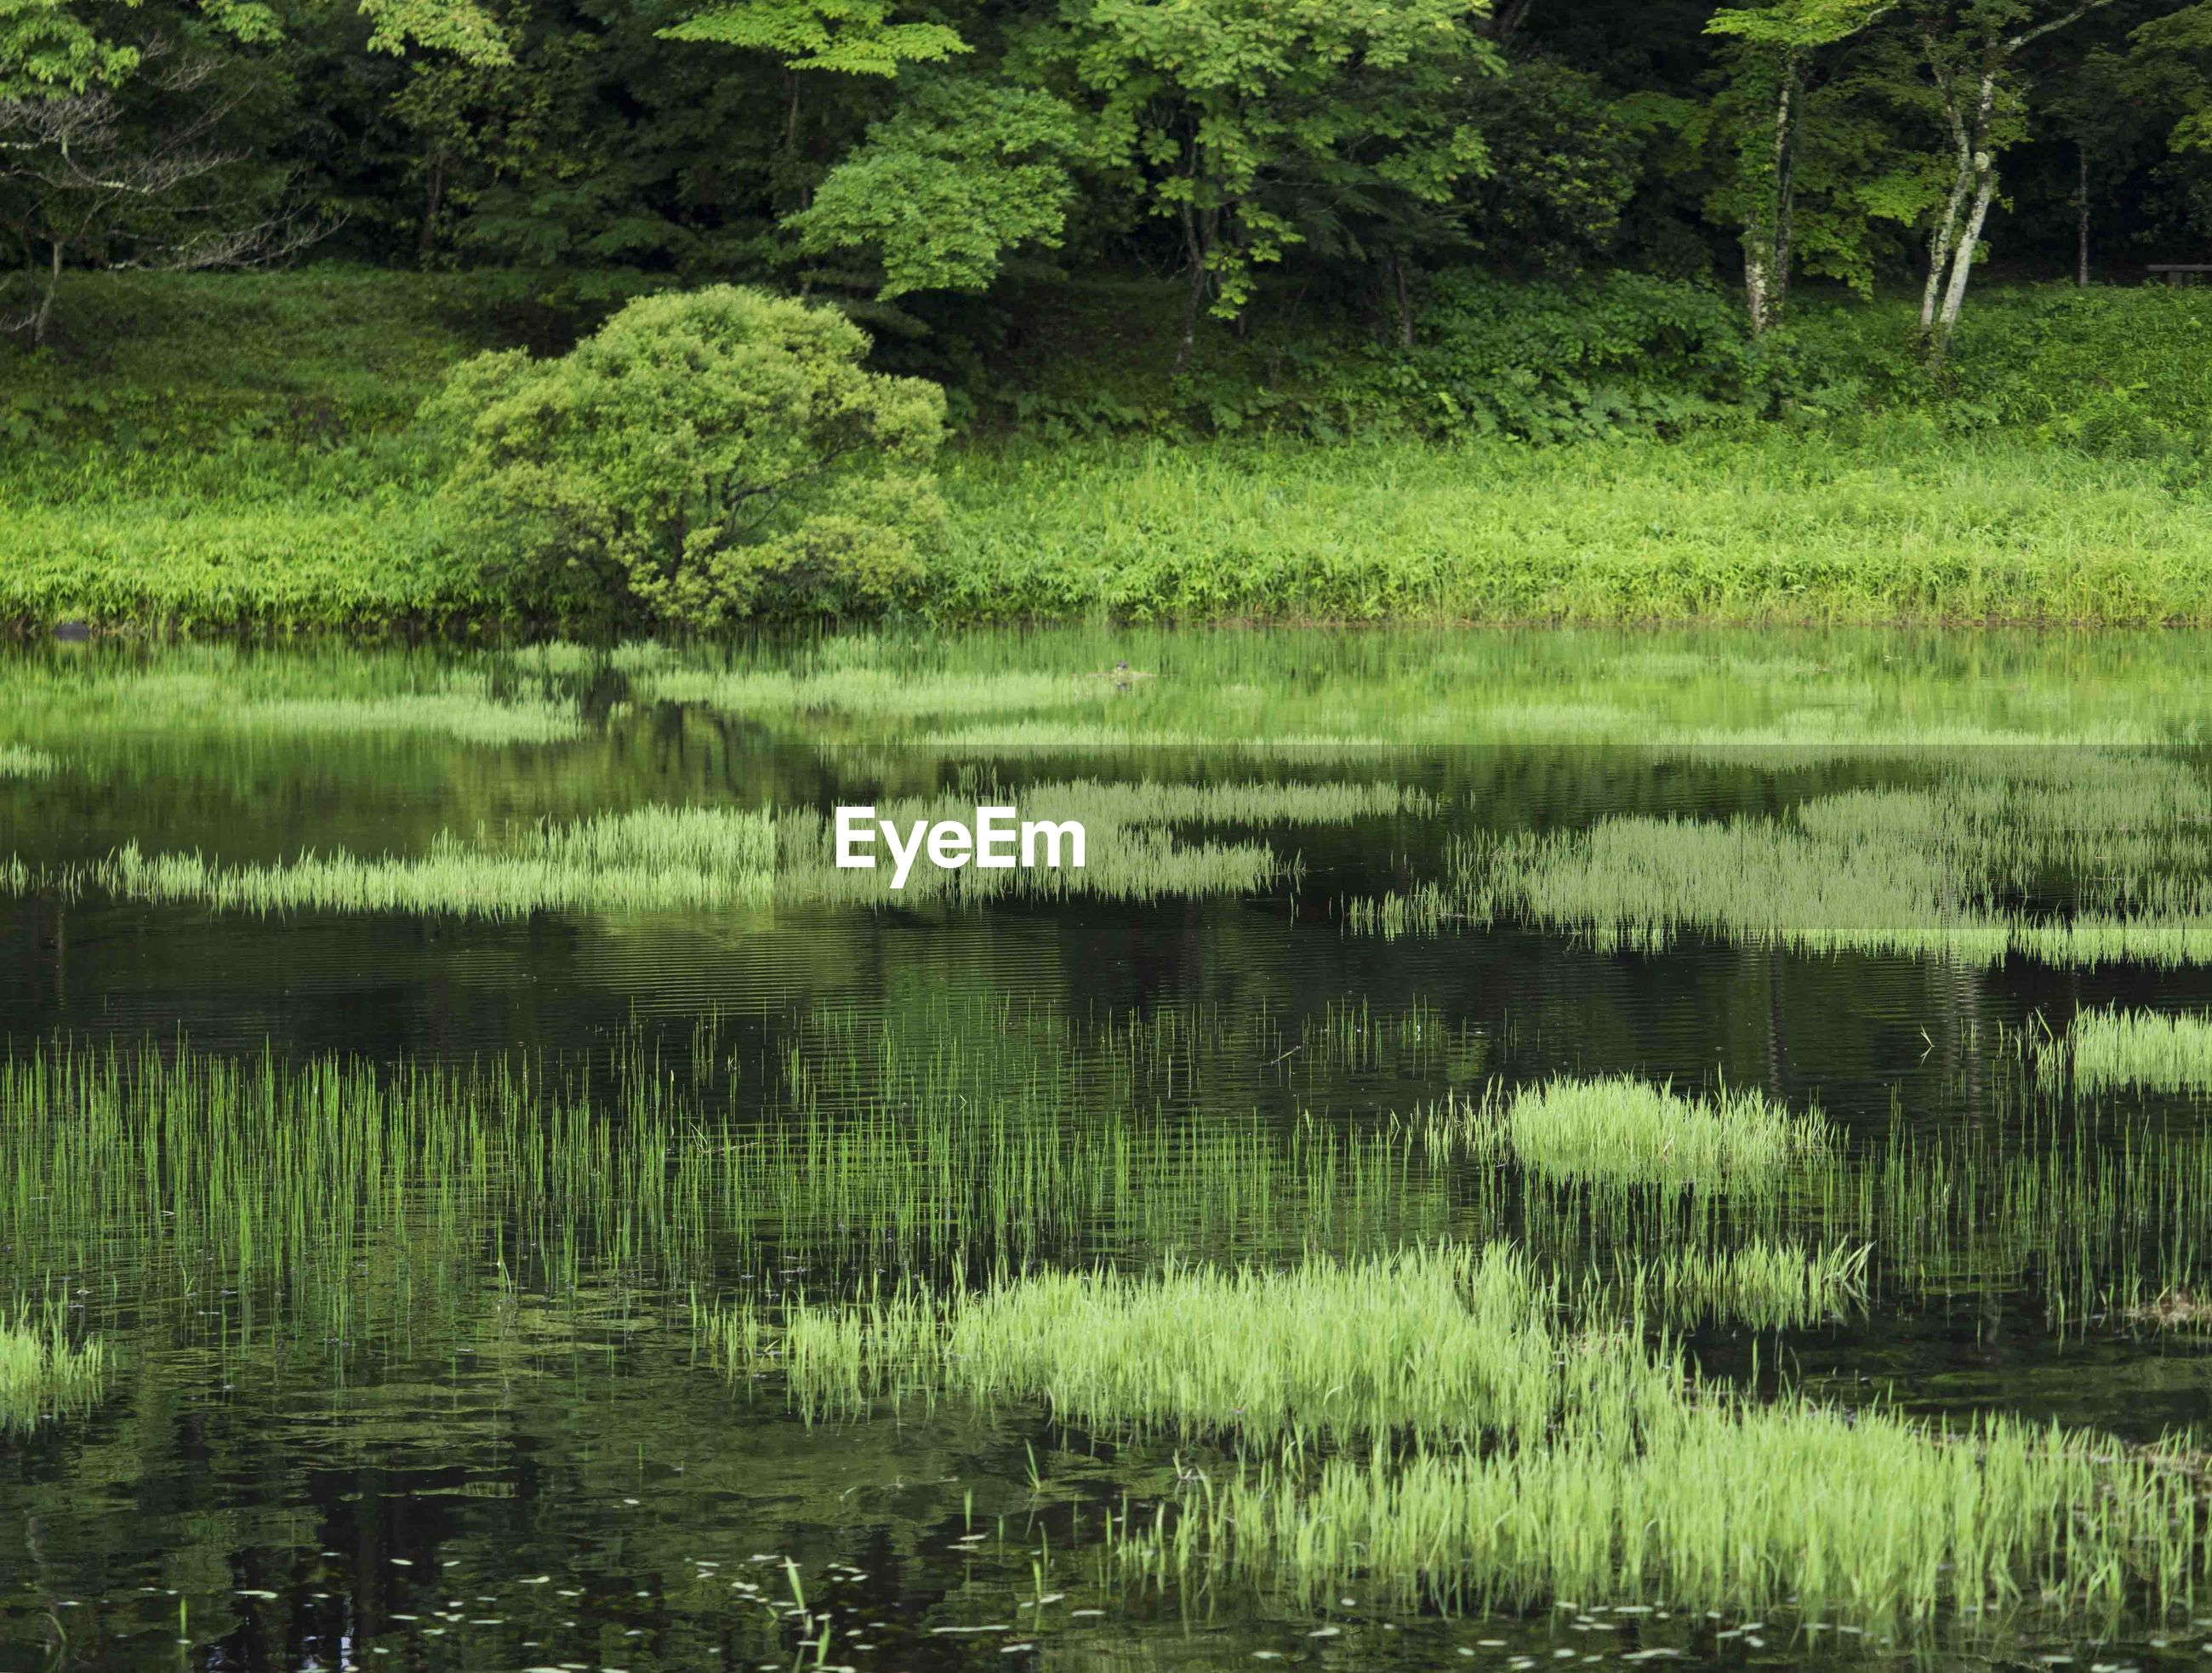 reflection, nature, lake, green, water, tranquility, outdoors, forest, no people, day, grass, beauty in nature